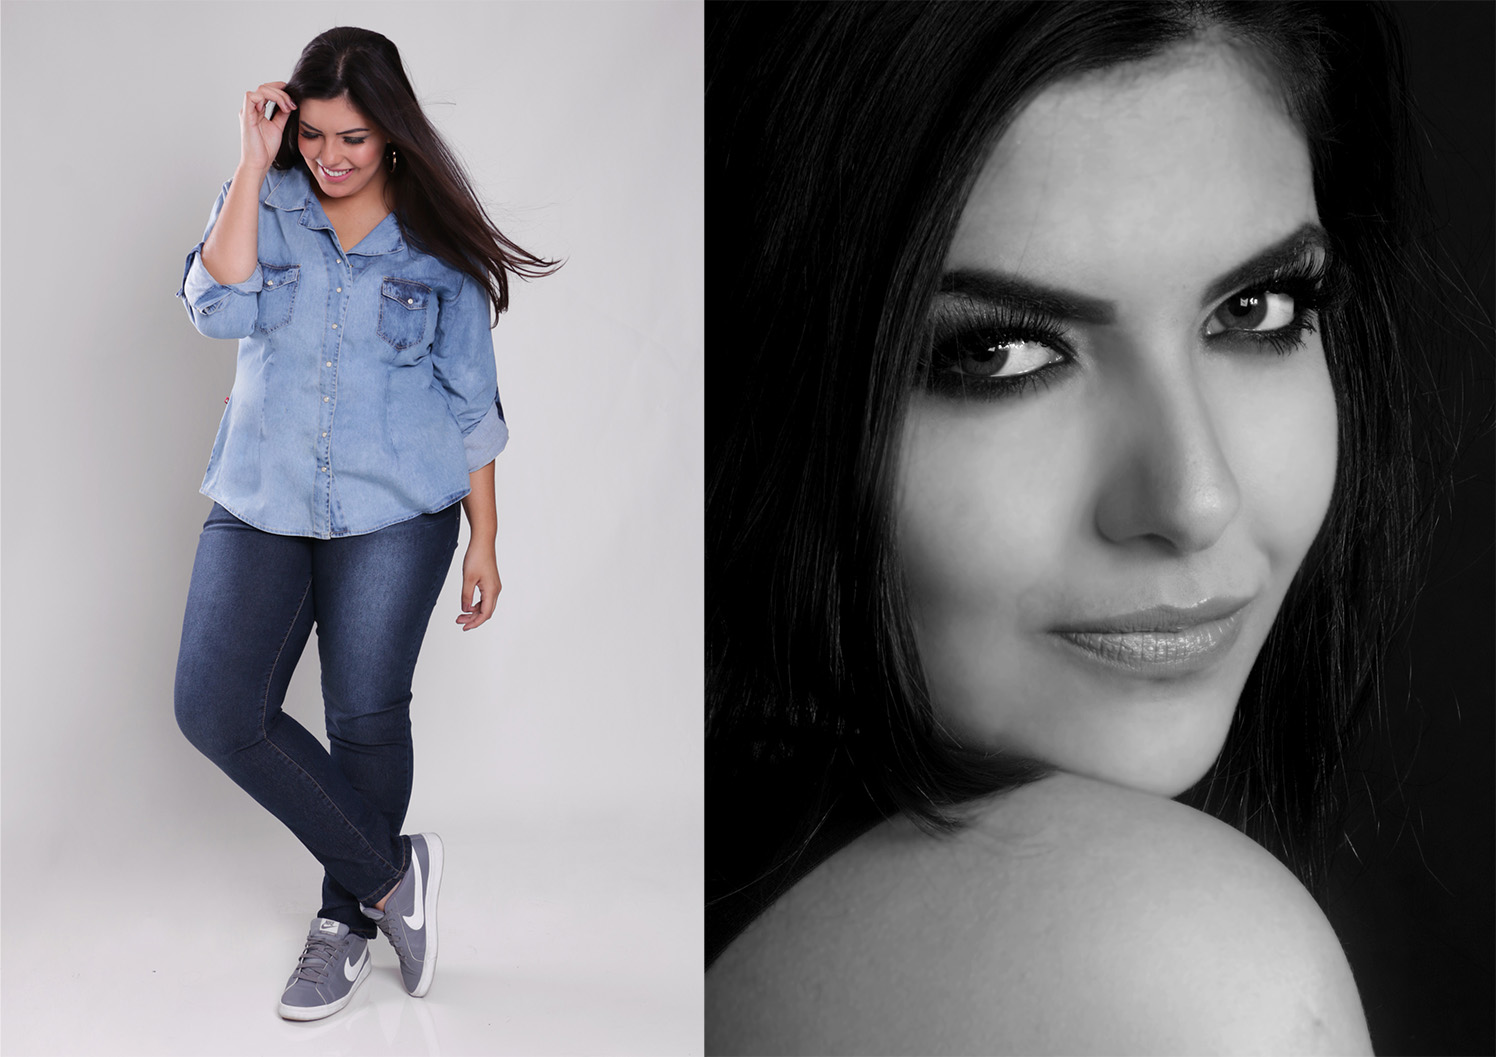 book-modelo-plus-size-criaturagg